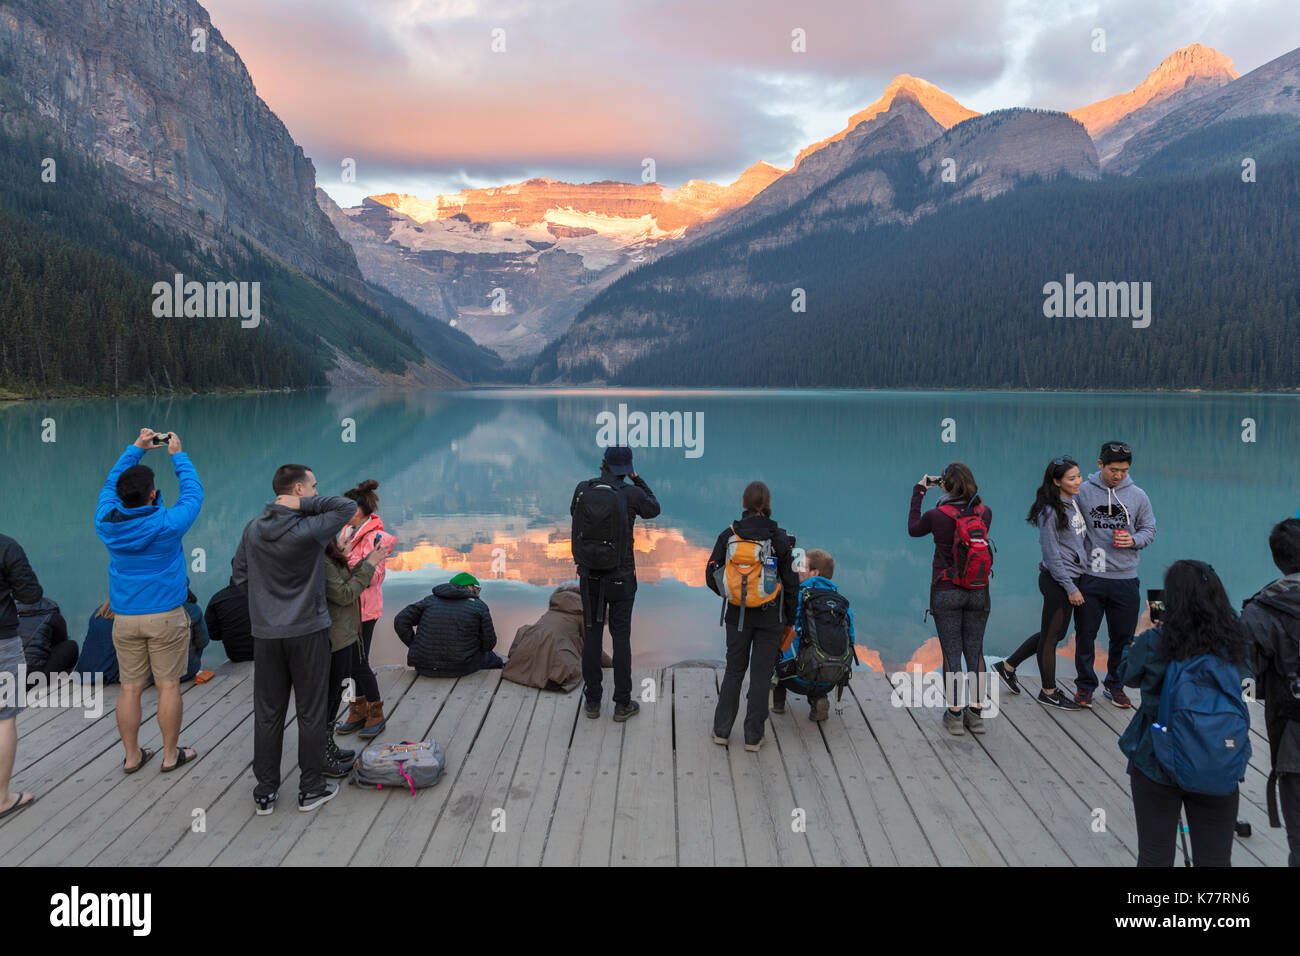 Banff National Park, Alberta Canada - 20 September 2017: Crowd of photographers and tourists at sunrise on the shore of Lake Louise - Stock Image